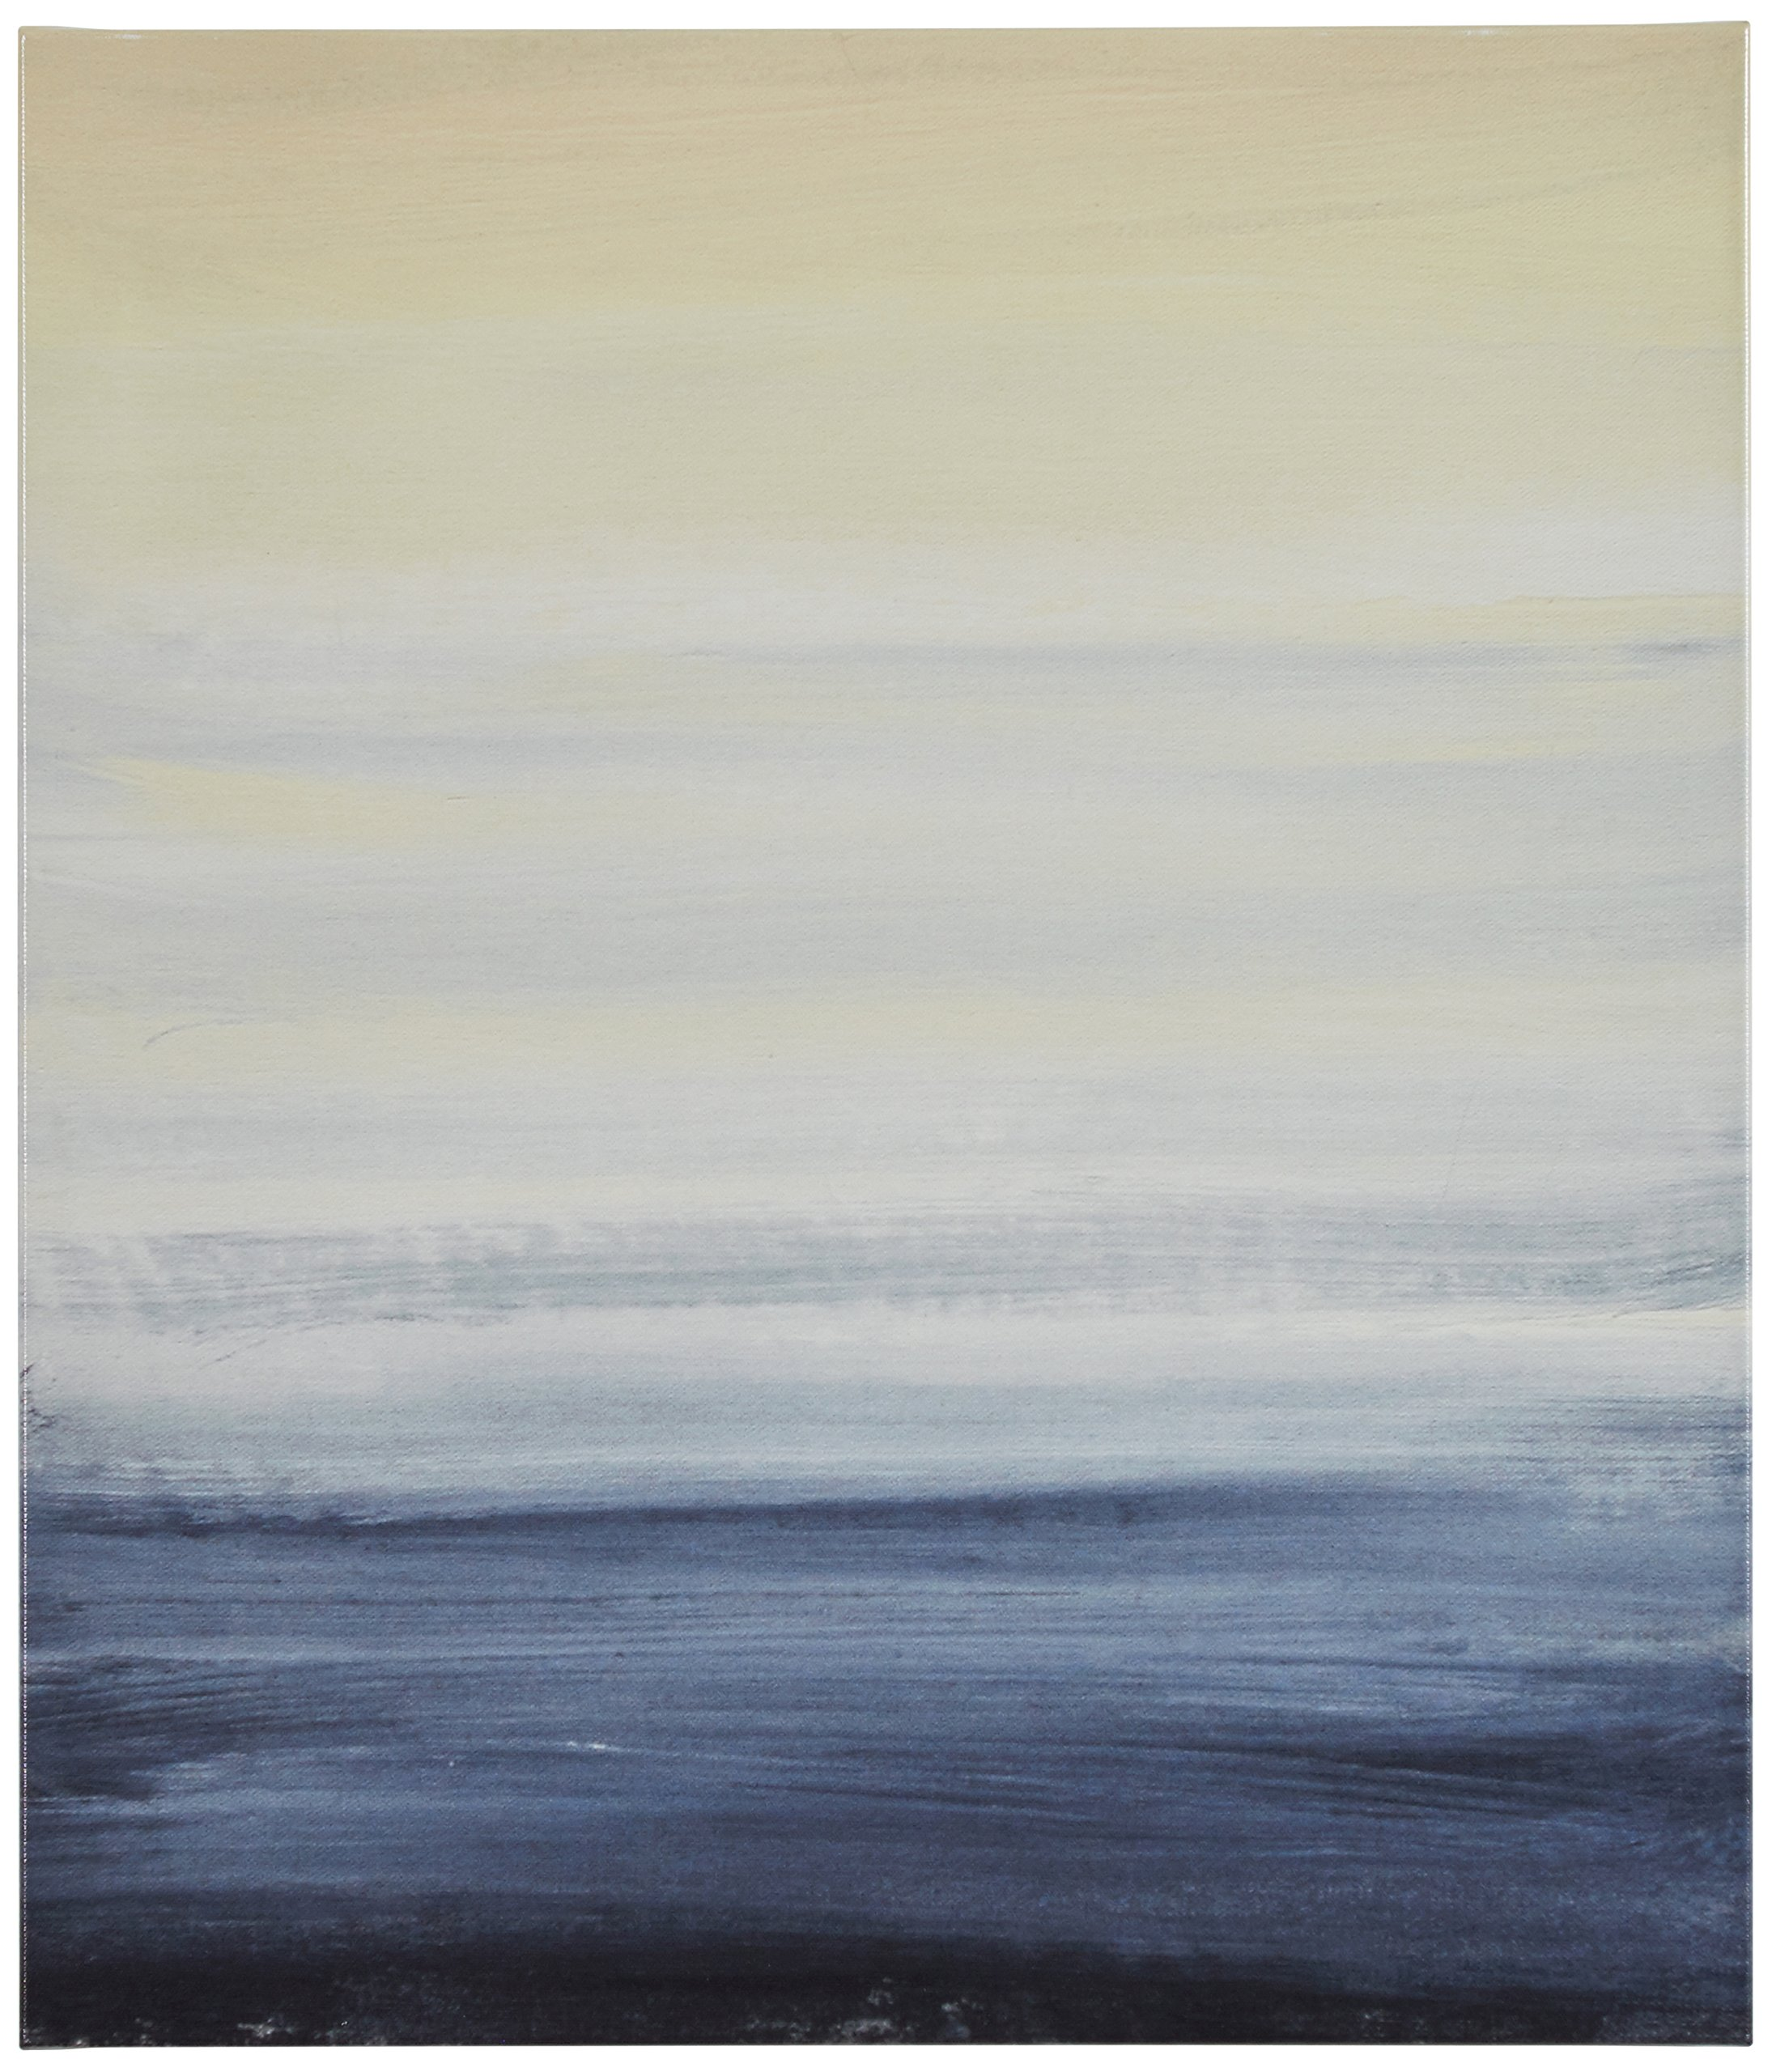 Modern Abstract Blue and Tan Ocean Print on Canvas, 20'' x 24'' by Stone & Beam